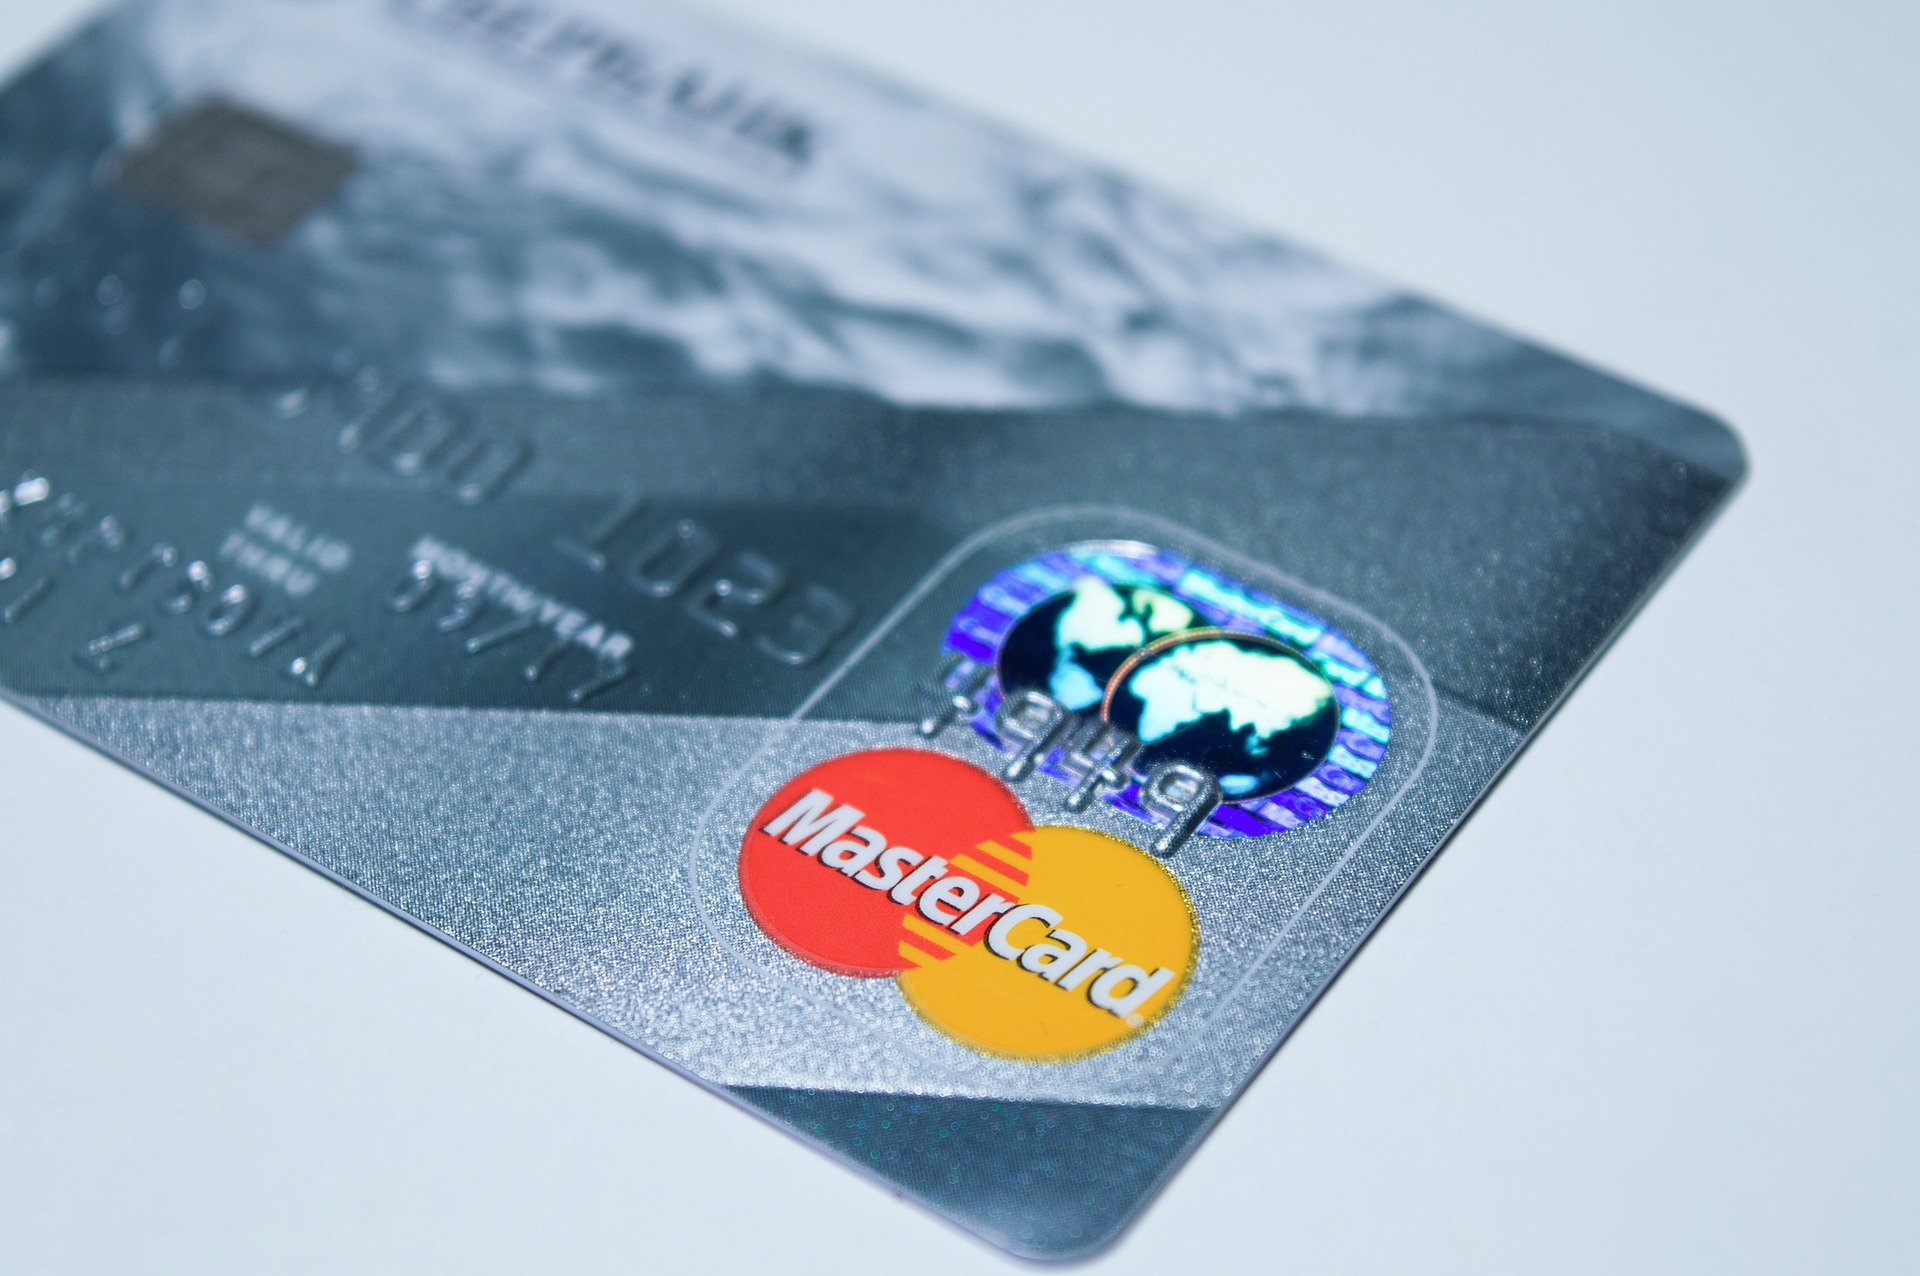 MasterCard MA stock news and analysis